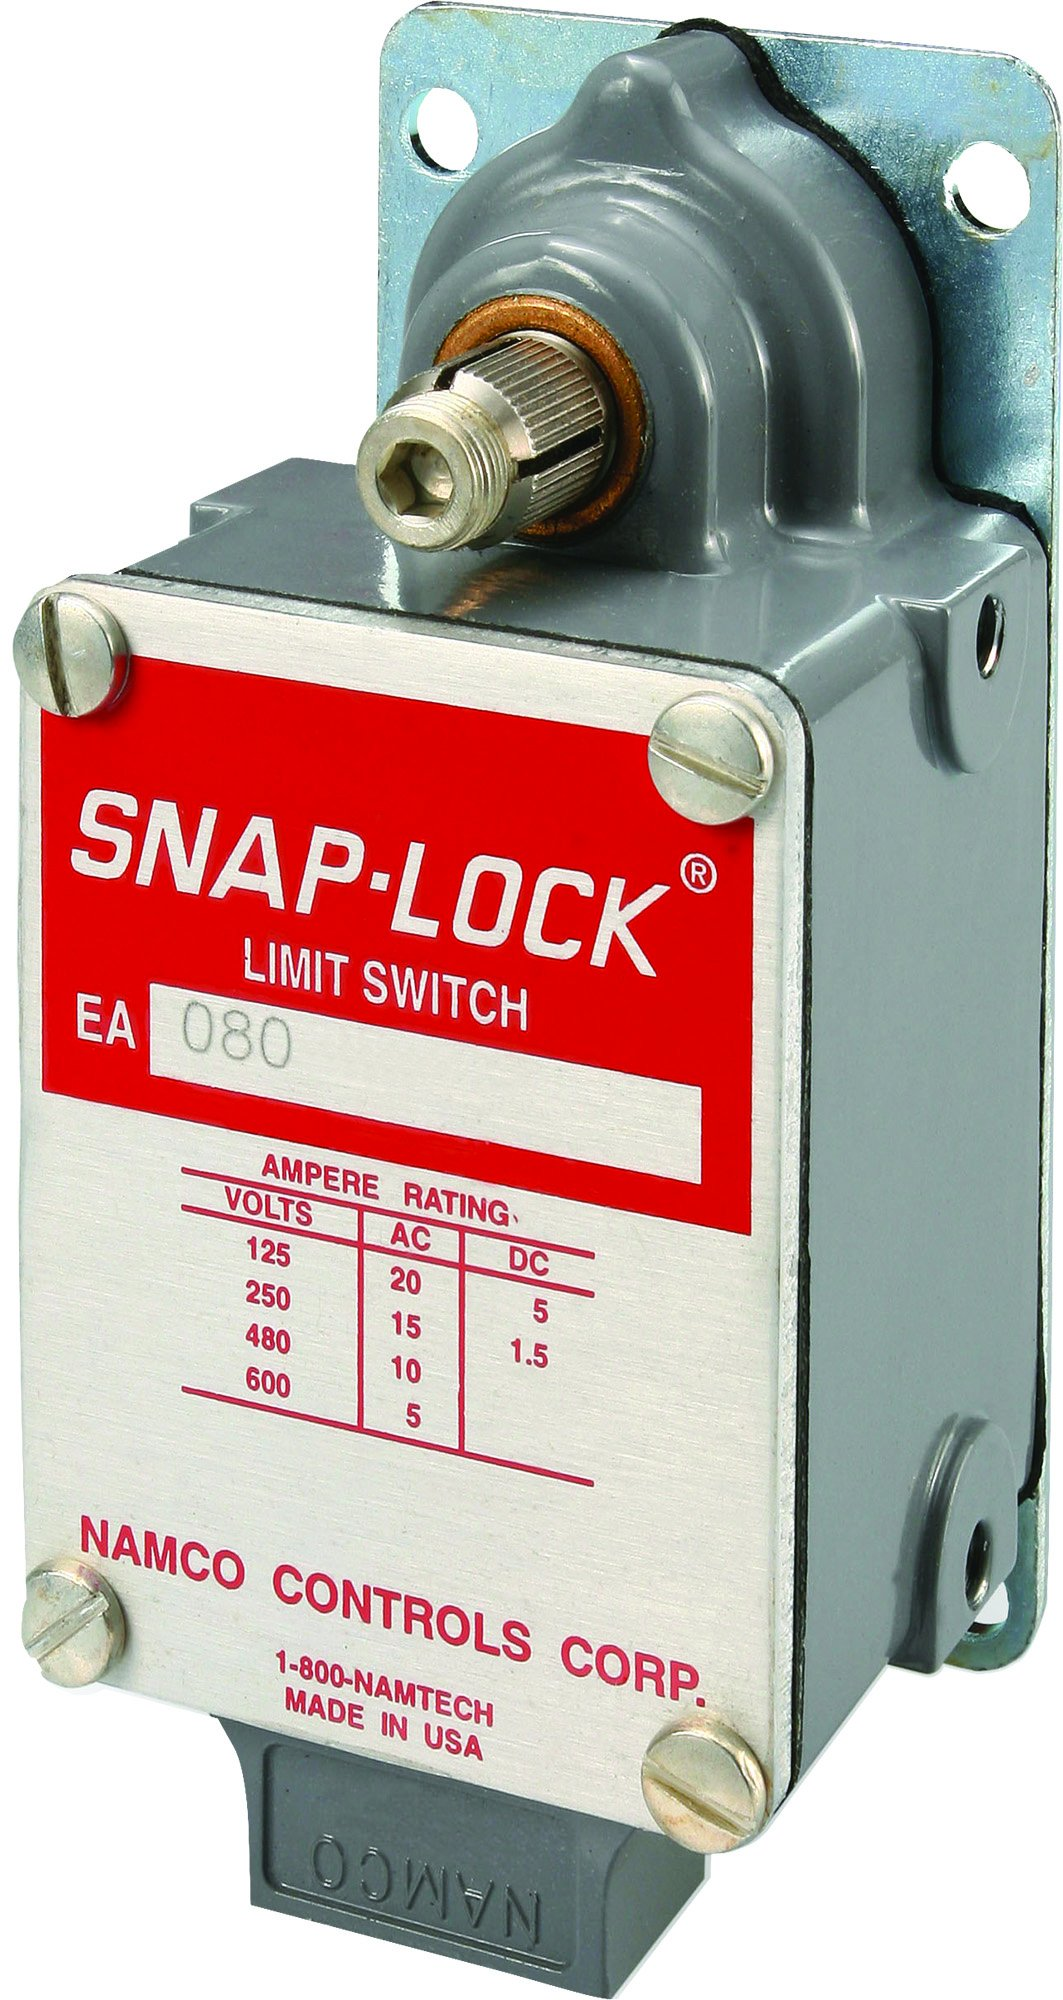 NAMCO EA080-11100 Single Pole Limit Switch, Long Mounted with Clockwise Rotation, Snap-Lock technology for heavy duty & rugged applications, part # EA080-11100